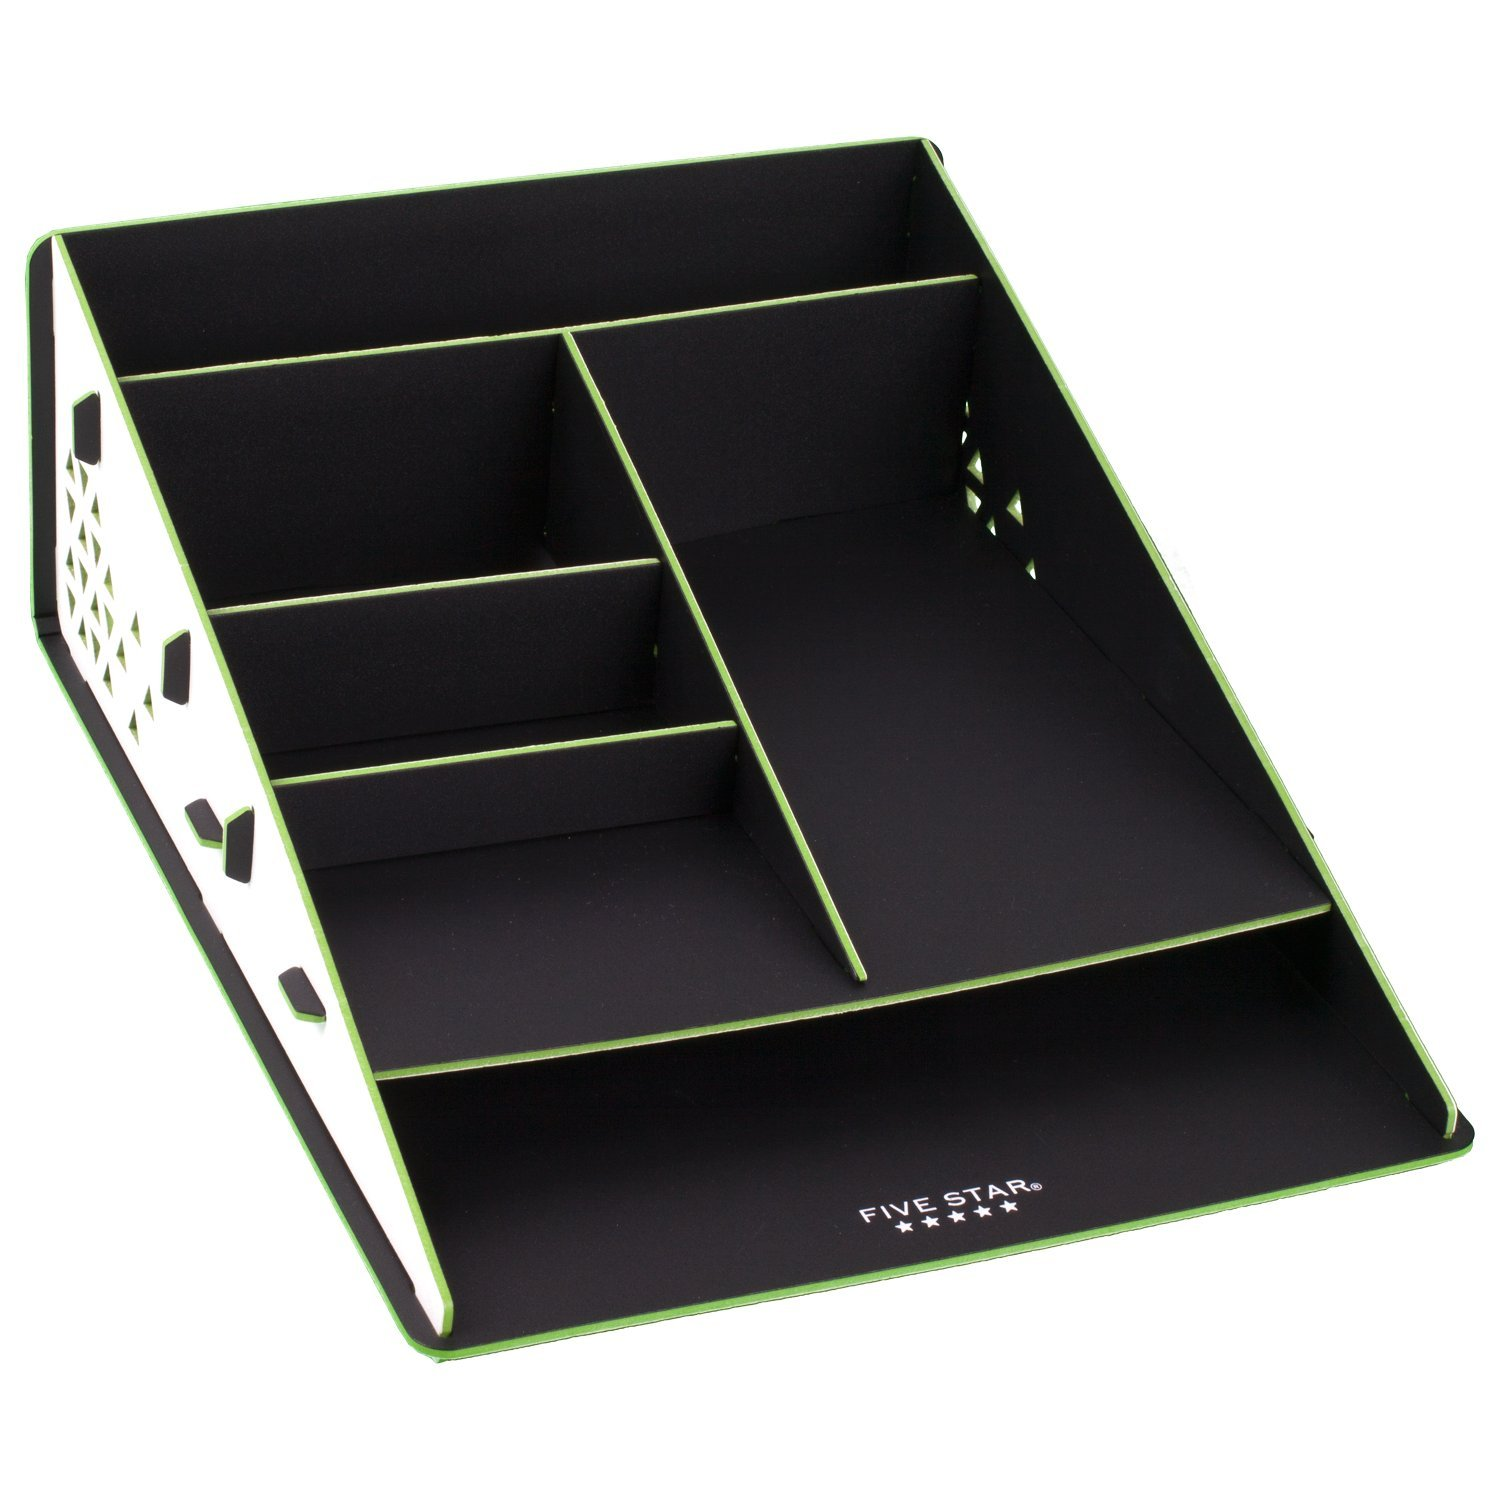 Five Star Desk Organizer, 6 Compartments, Wedge, White/Lime (73684)